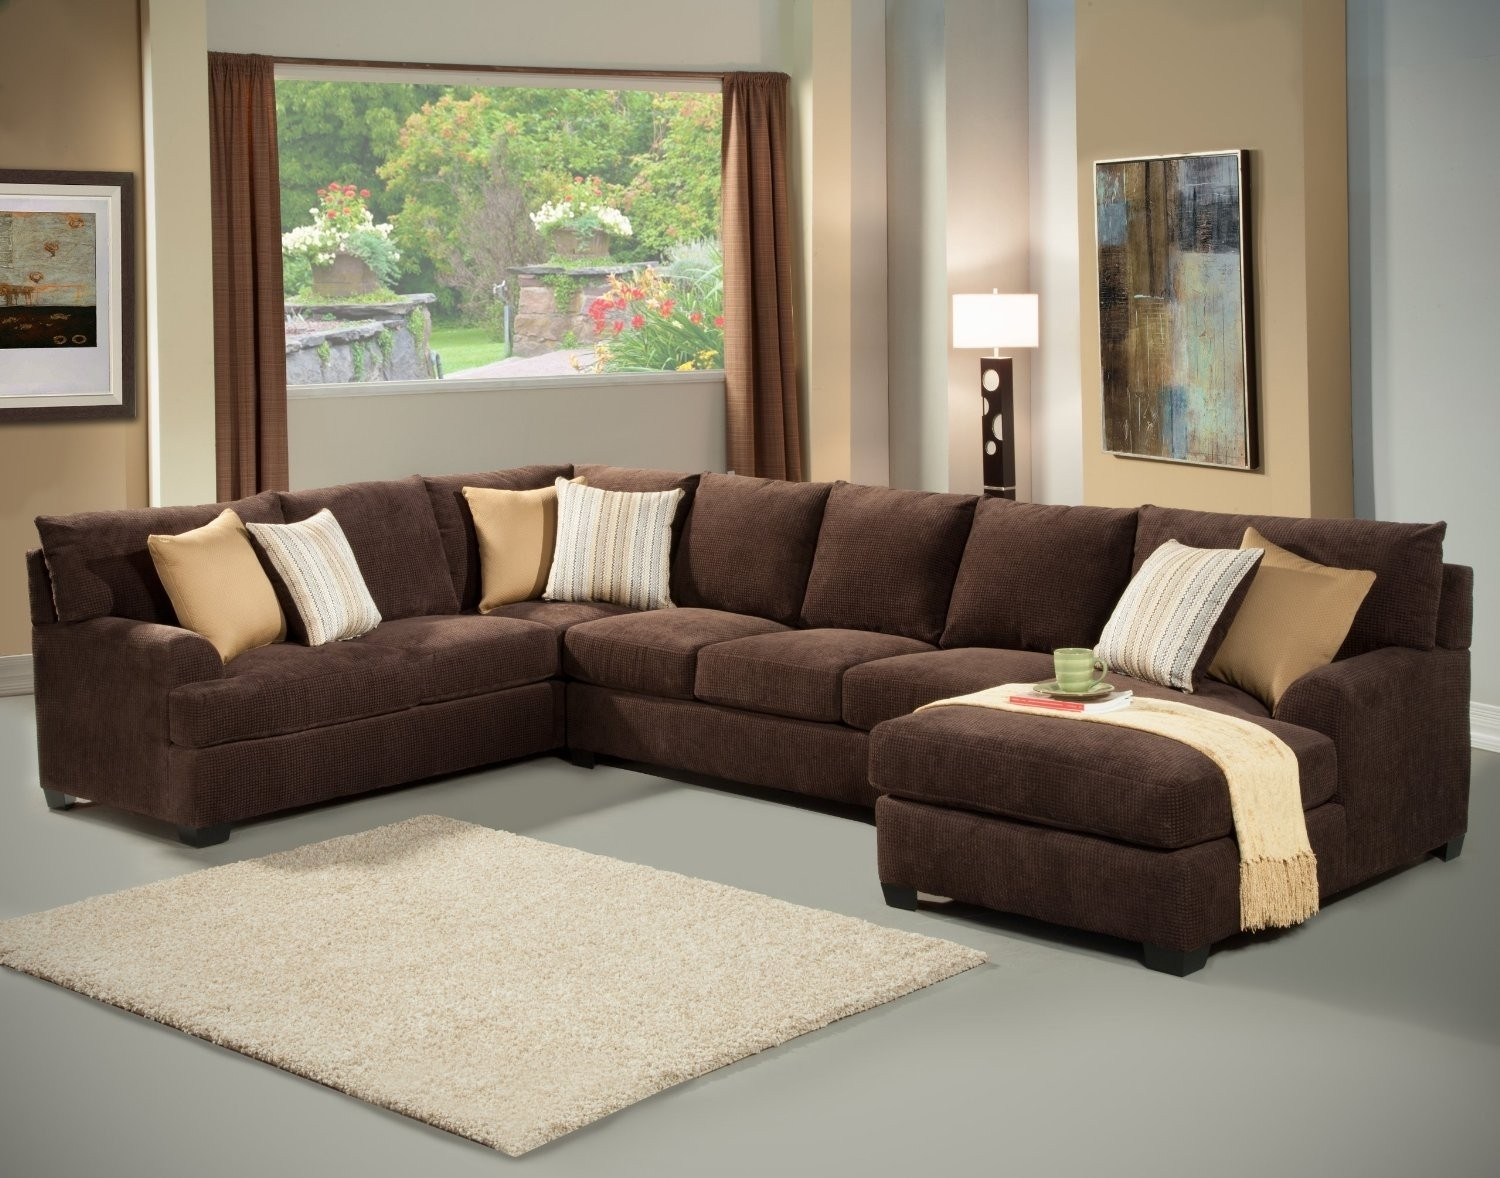 Unique Small Brown Sectional Sofa – Buildsimplehome With Regard To Small Sectional Sofas With Chaise And Ottoman (View 14 of 15)